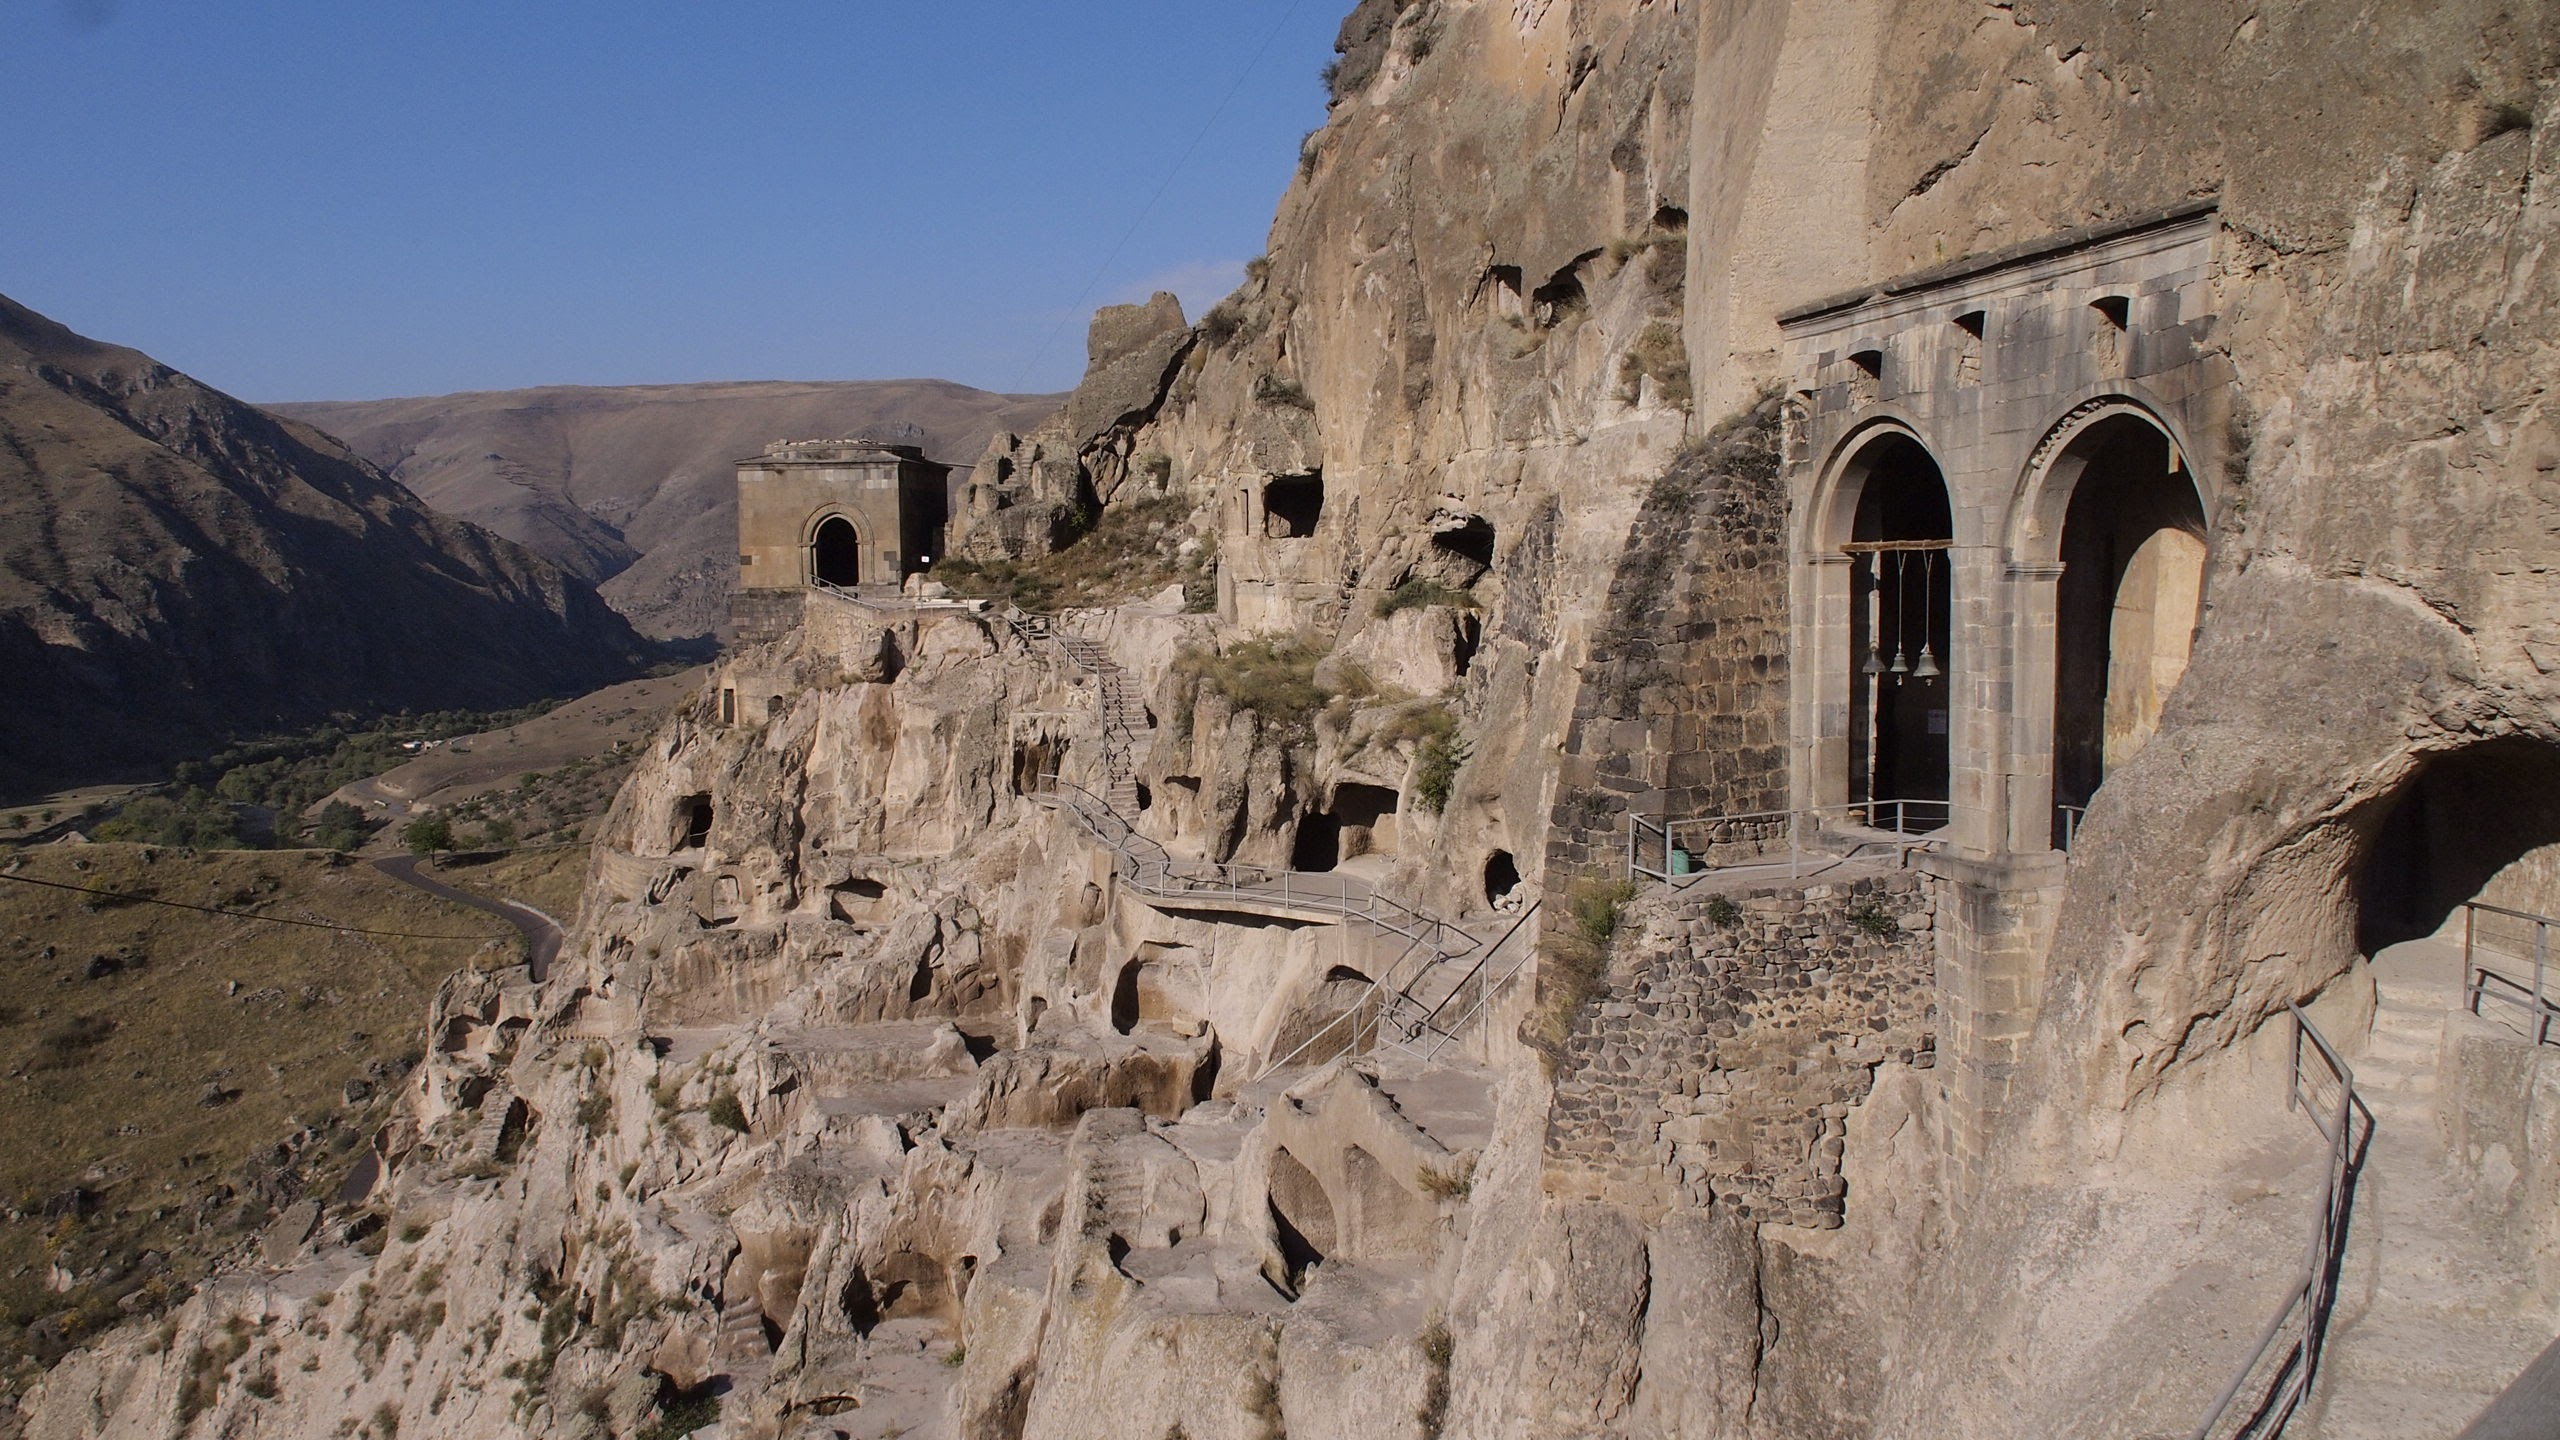 The 2 arch portica of the chapel inside Vardzia